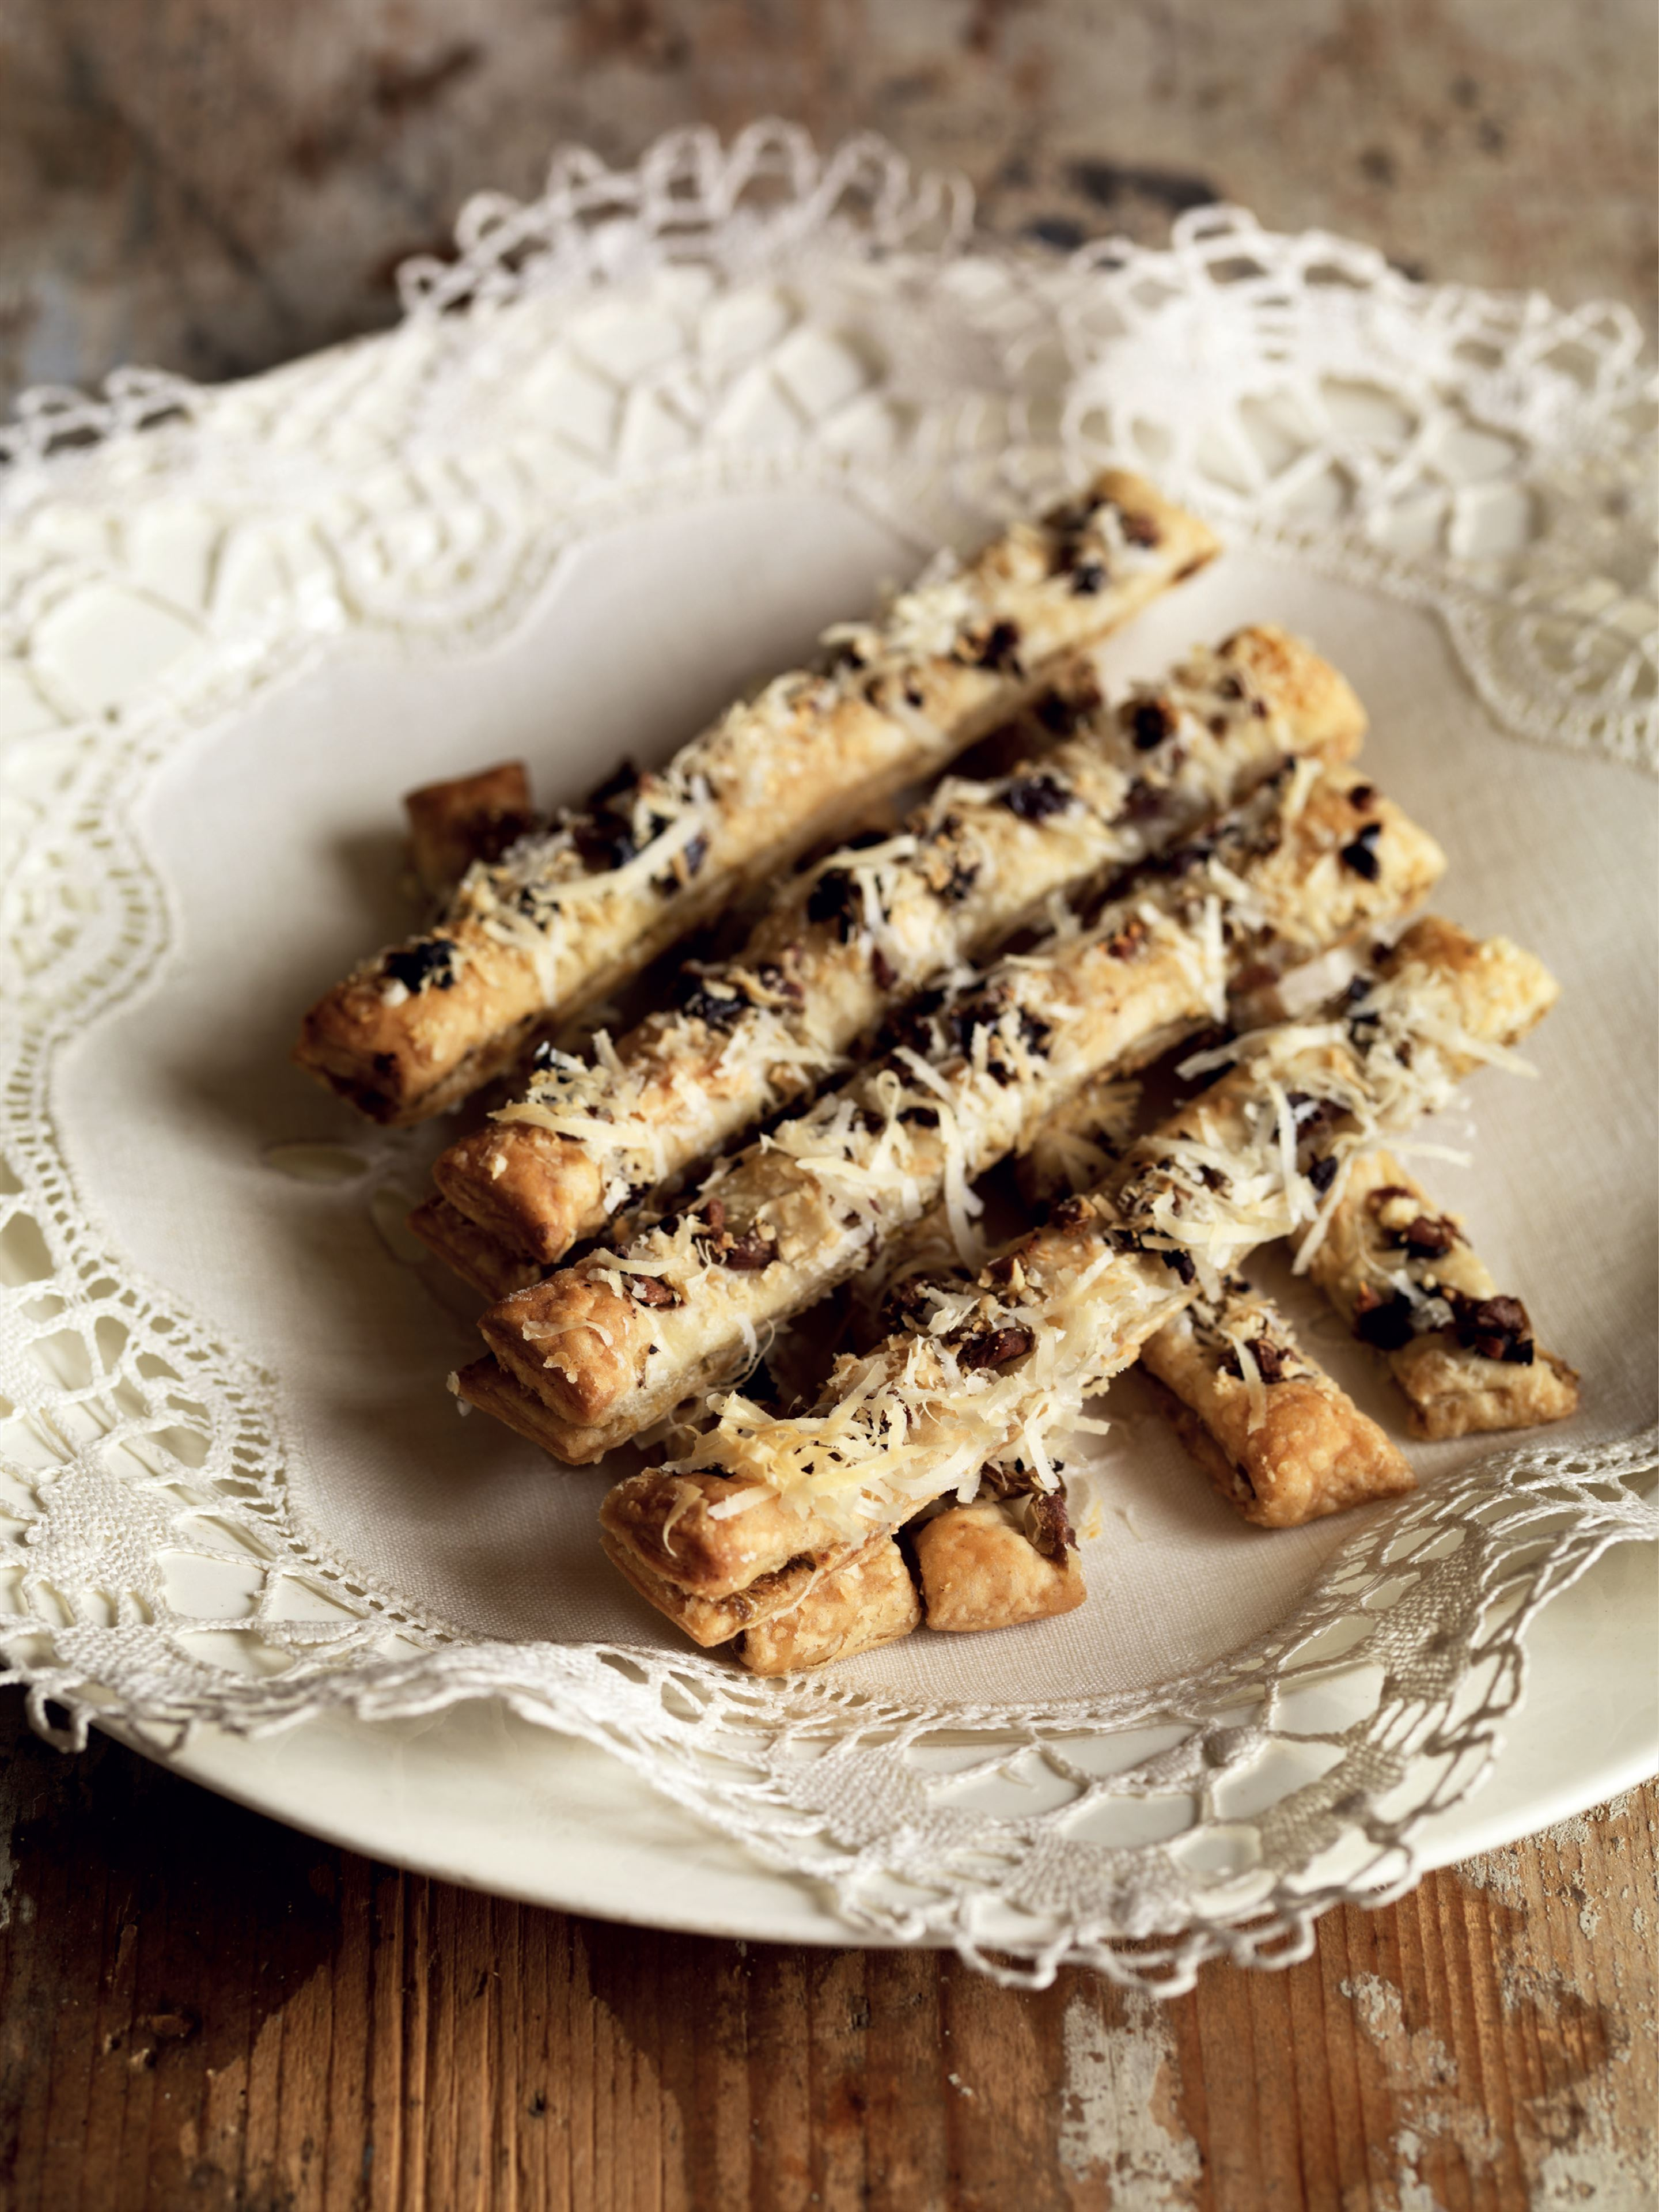 Olive and cheese straws